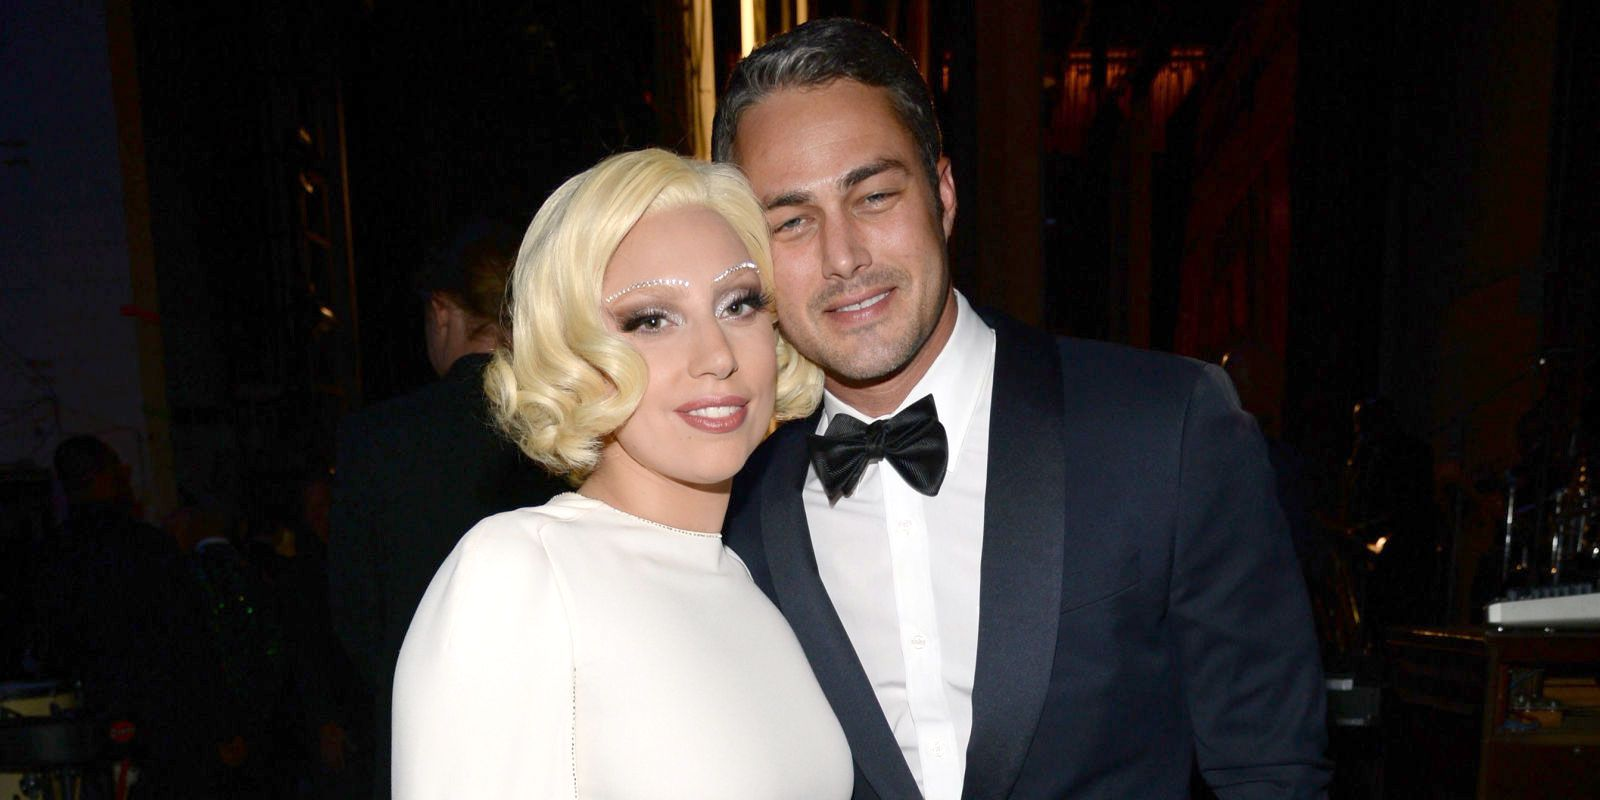 Lady Gaga became engaged to her chosen one Taylor Kinney 02/17/2015 25